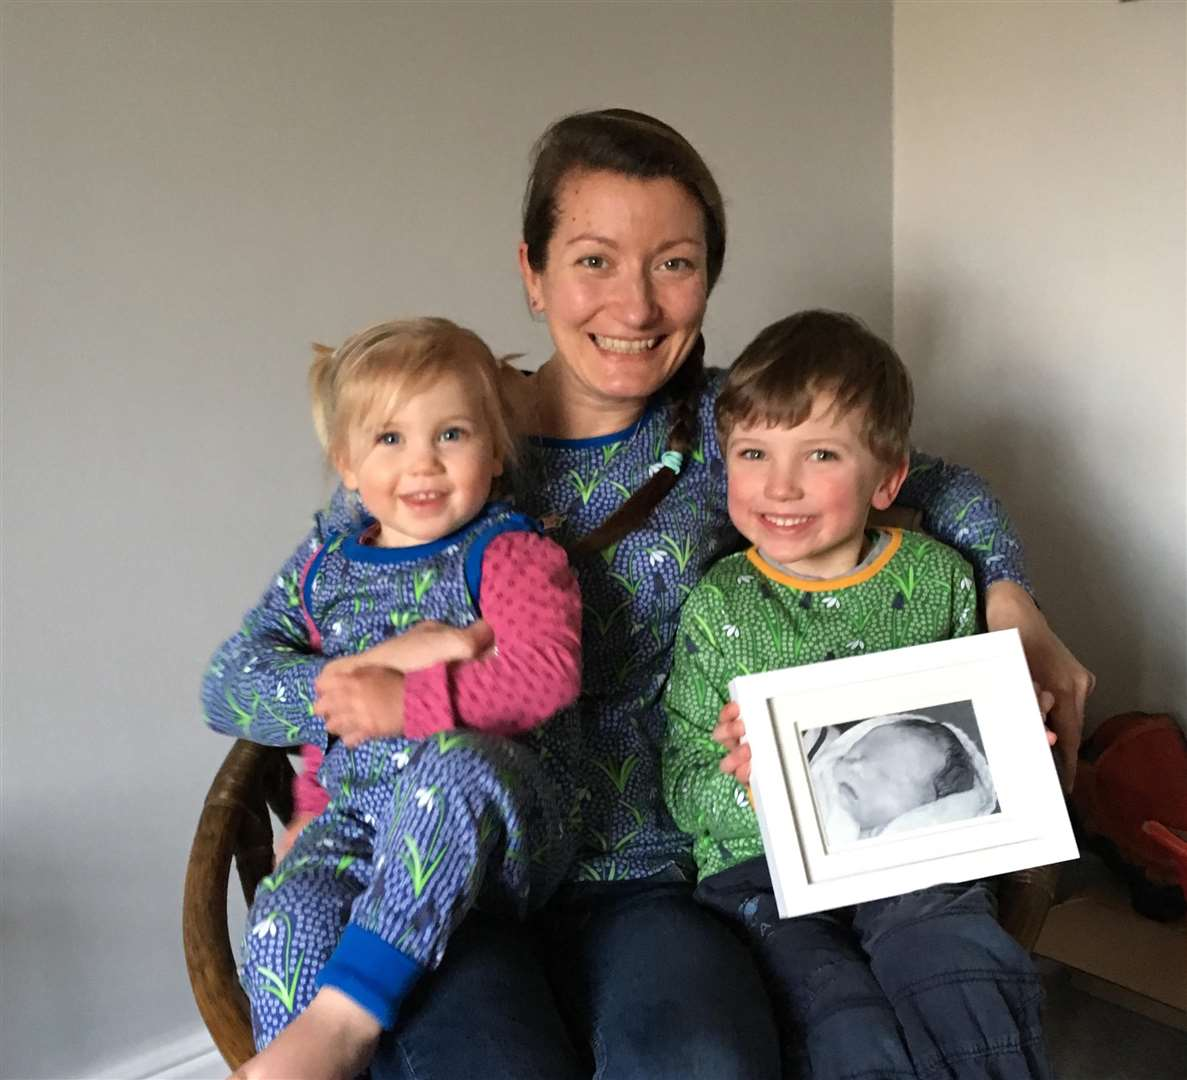 Frankie with Ayla and Jago holding a photo of Esme